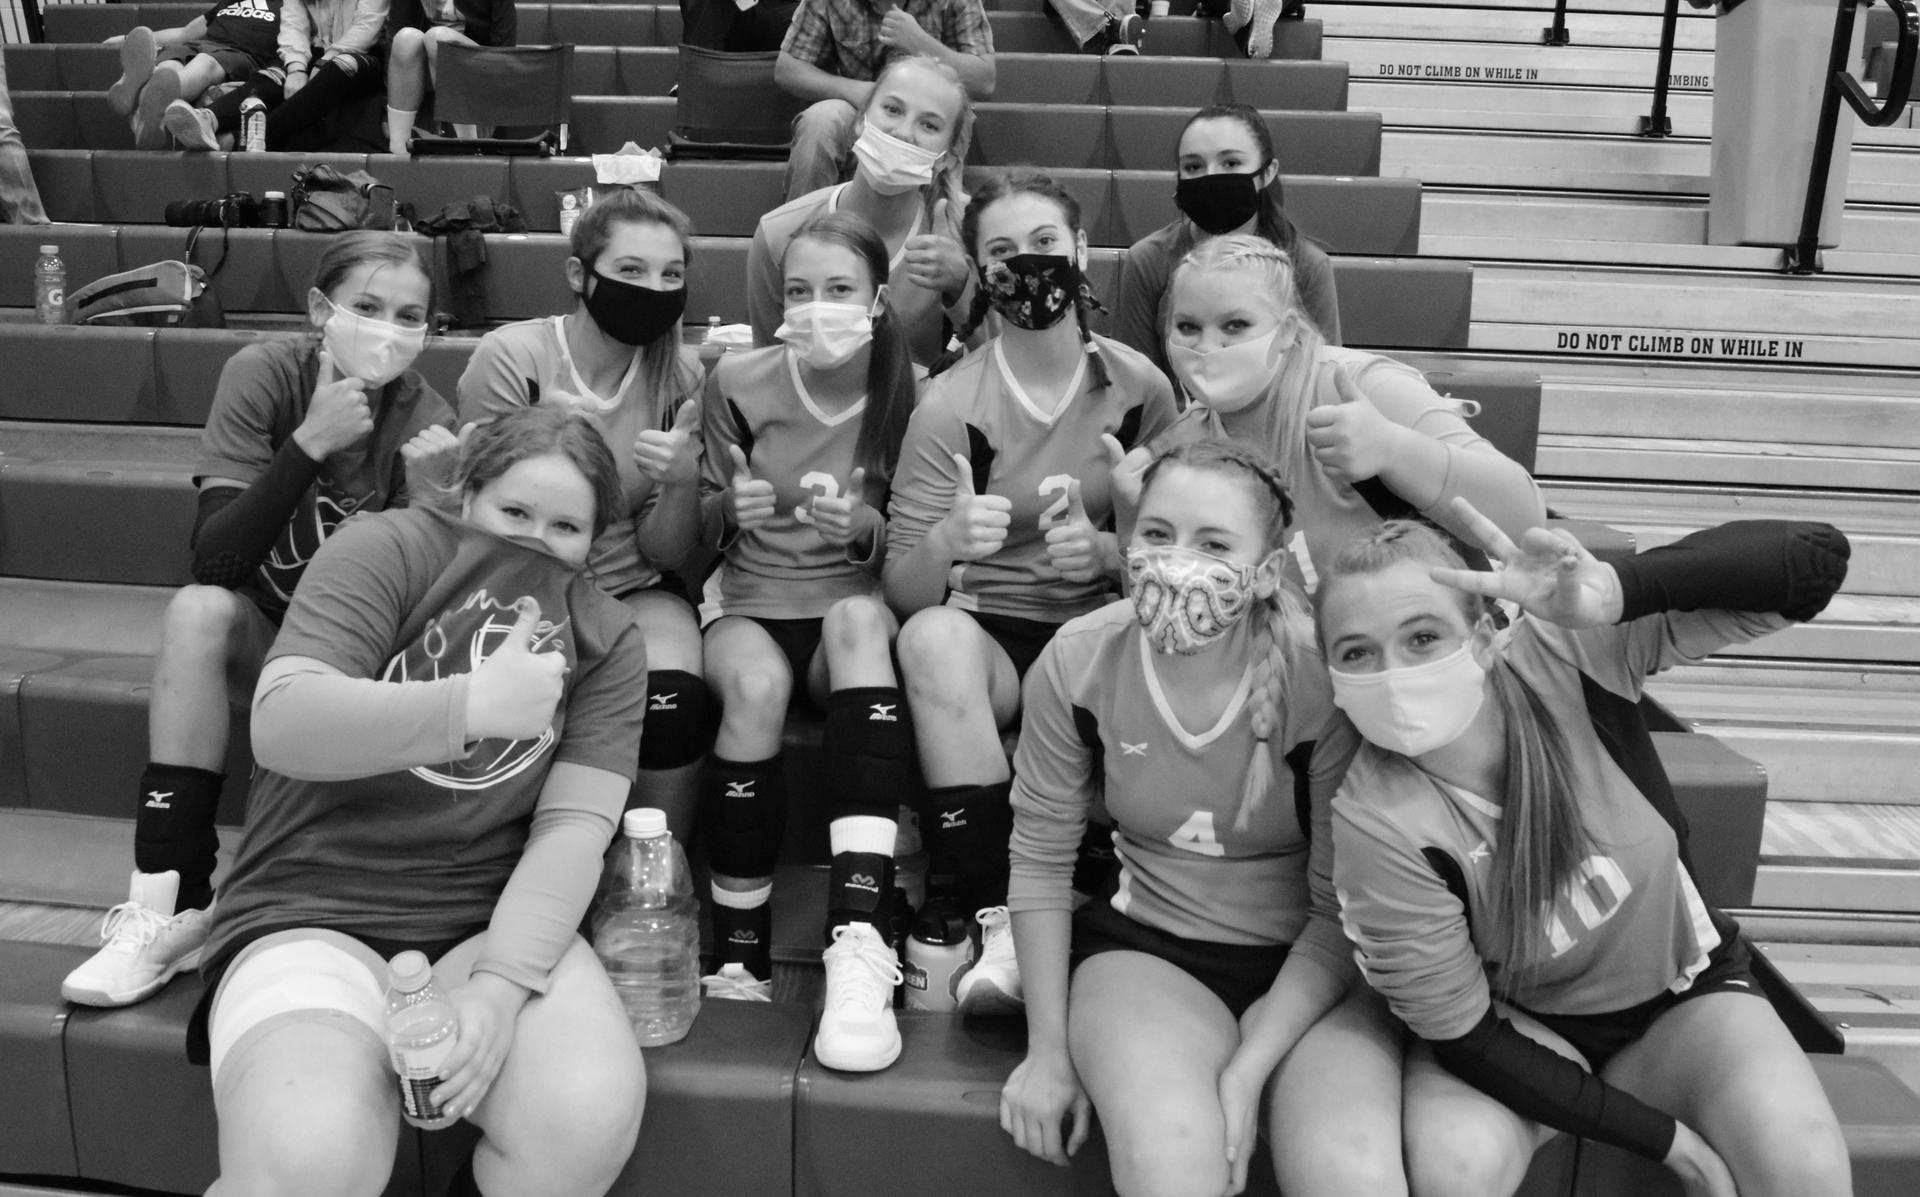 Volleyball Team with Masks